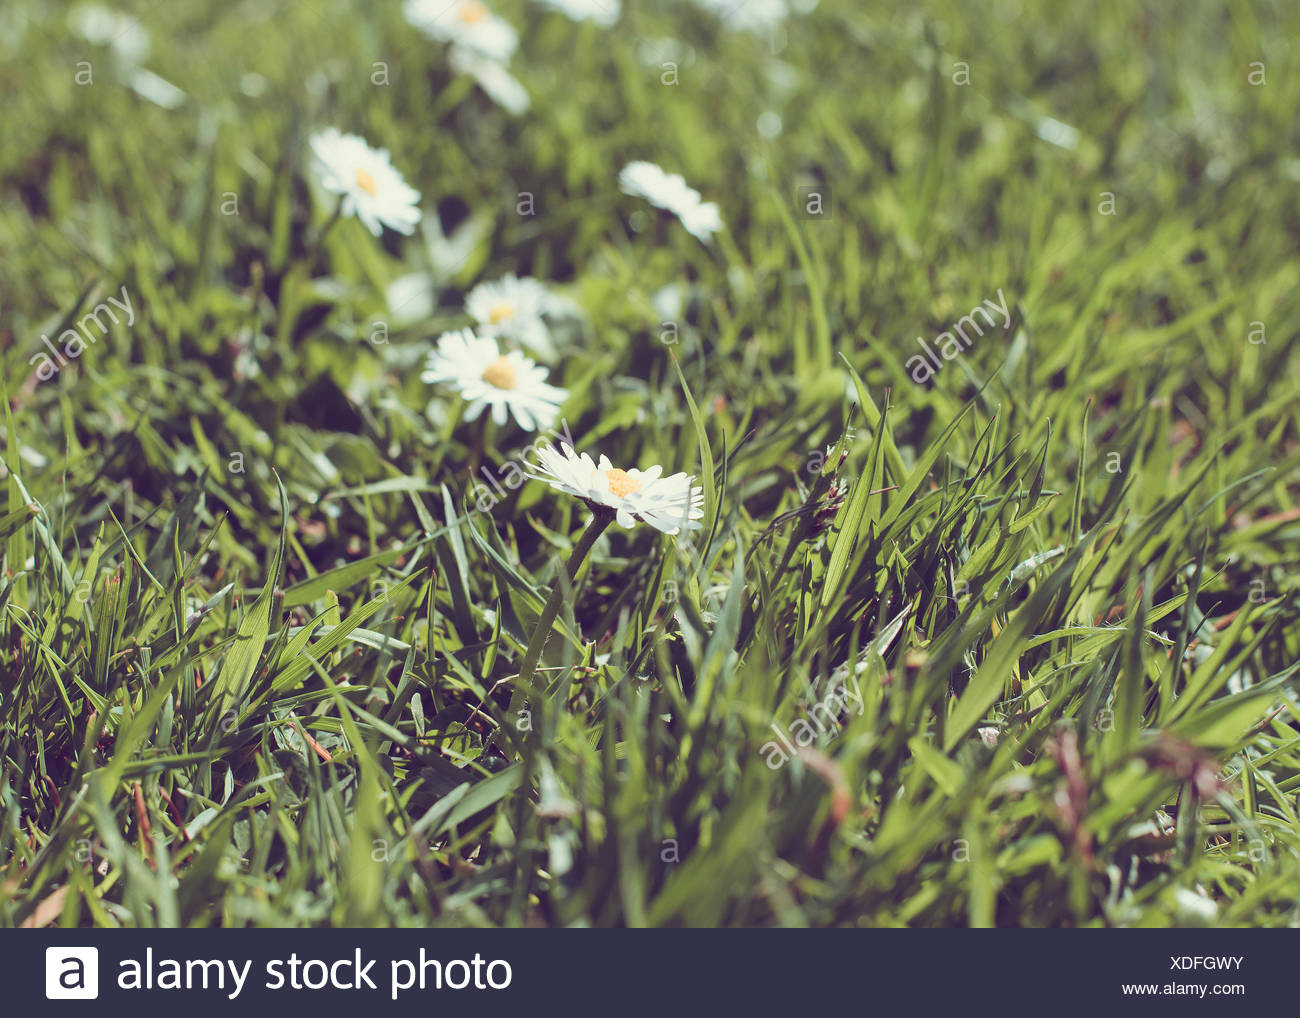 Daisies in meadow - Stock Image